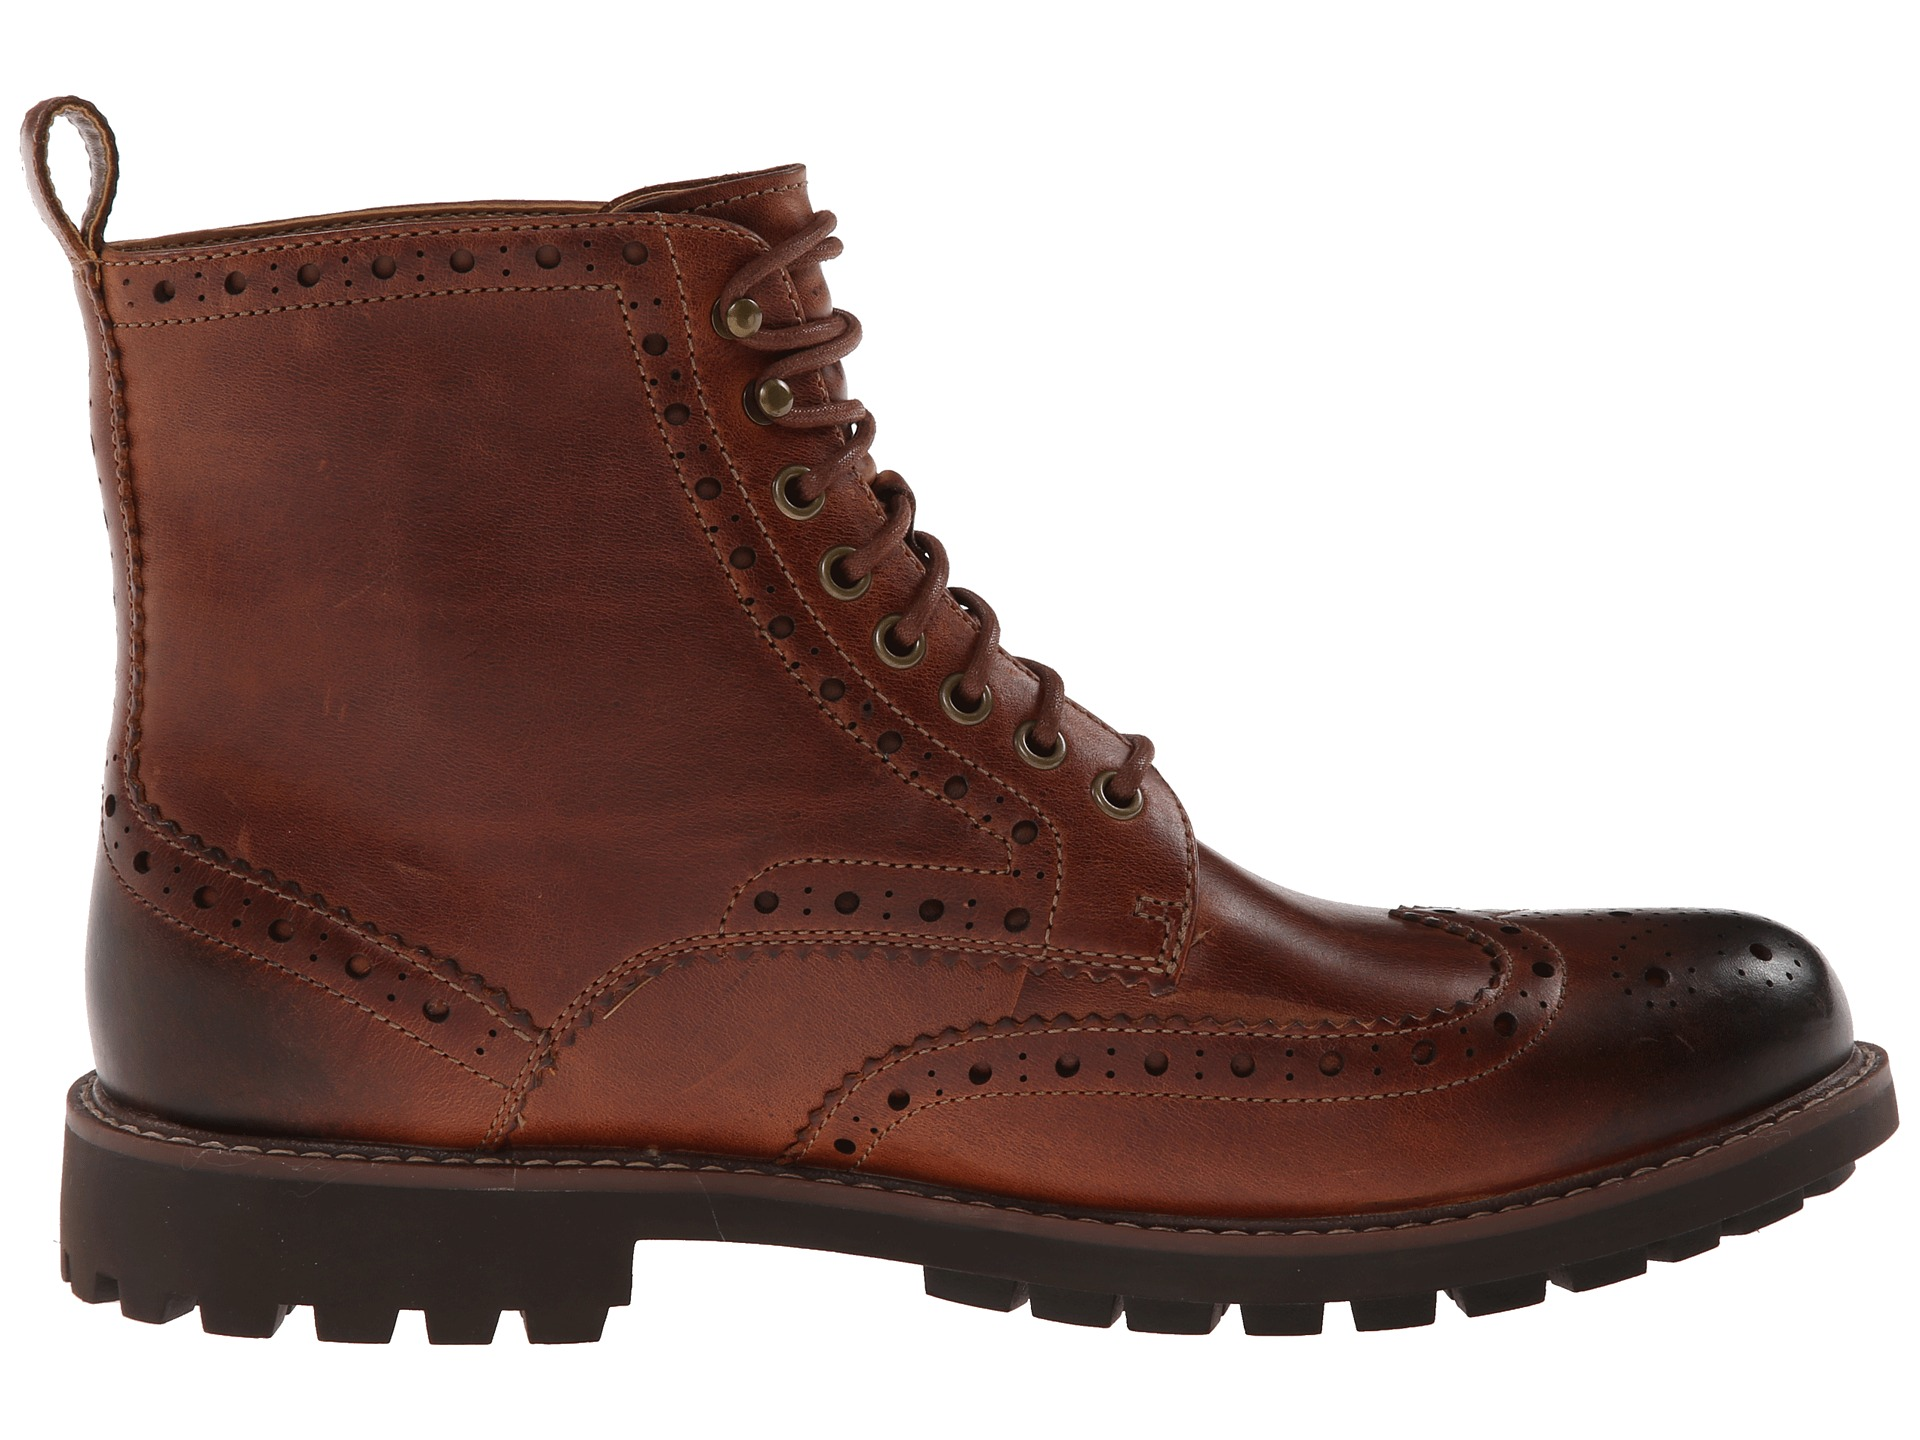 Clarks Montacute Lord